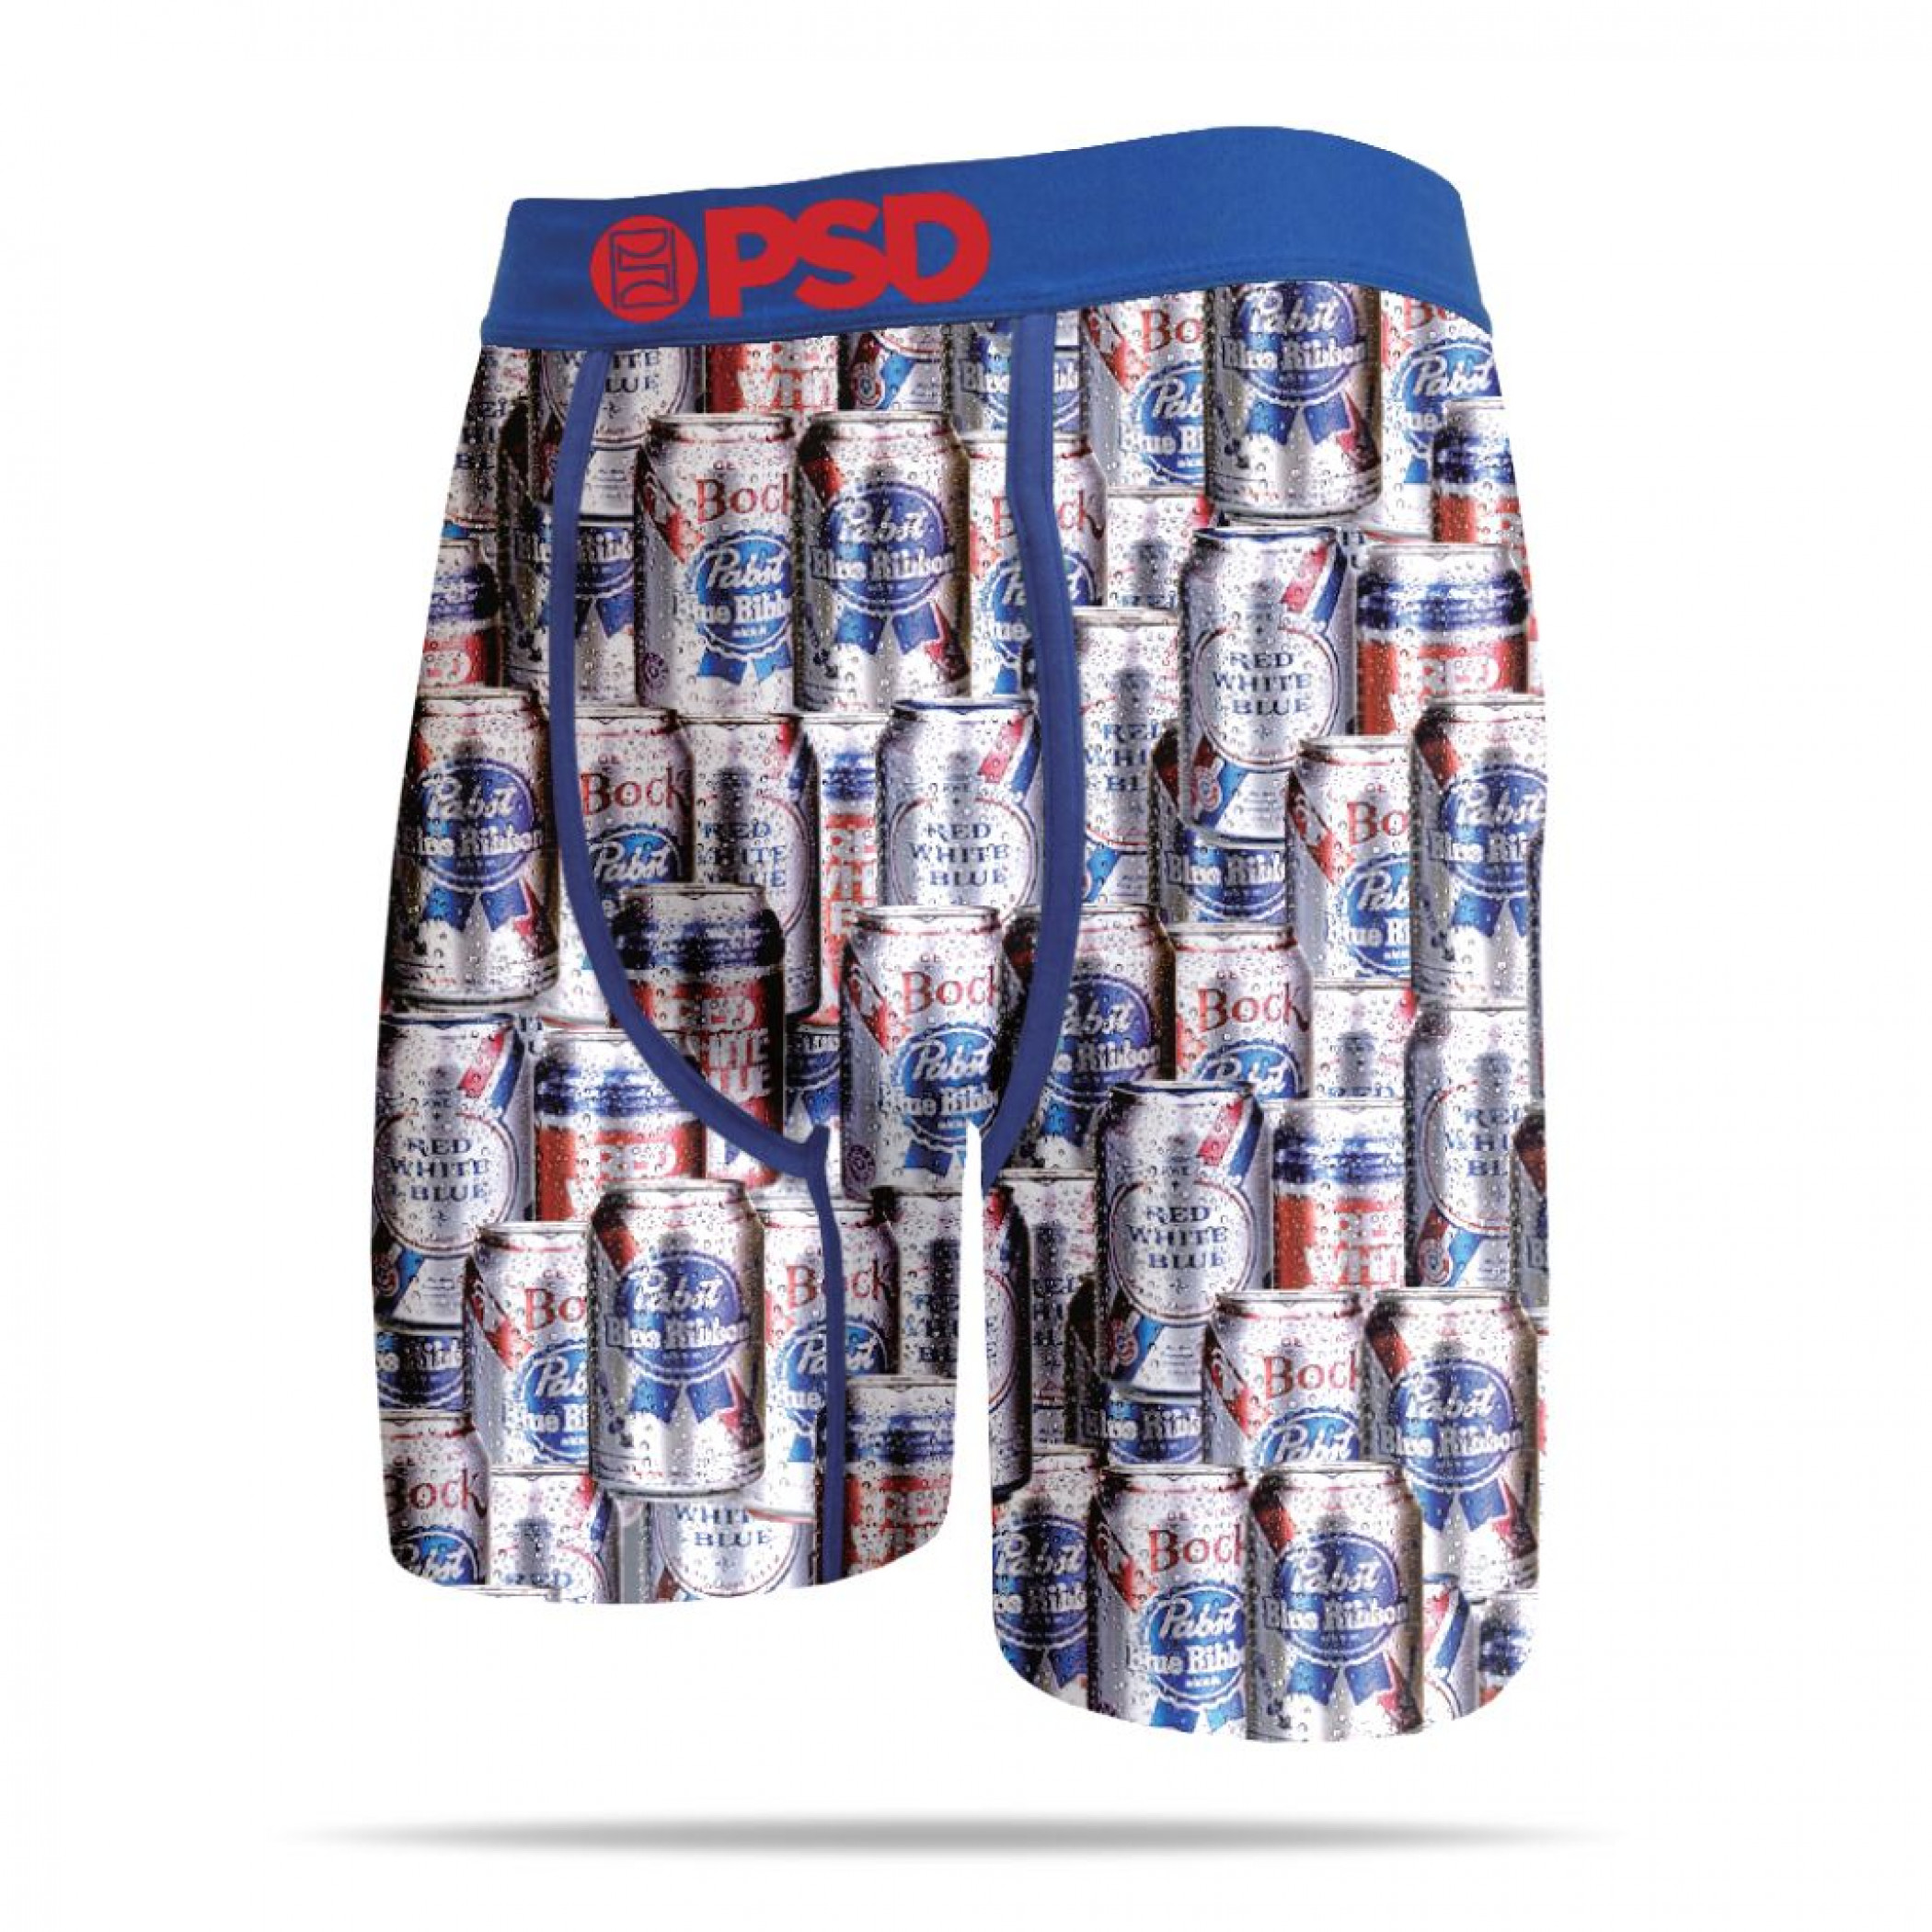 Pabst Blue Ribbon Beer Cans All Over Print Men's Boxer Briefs